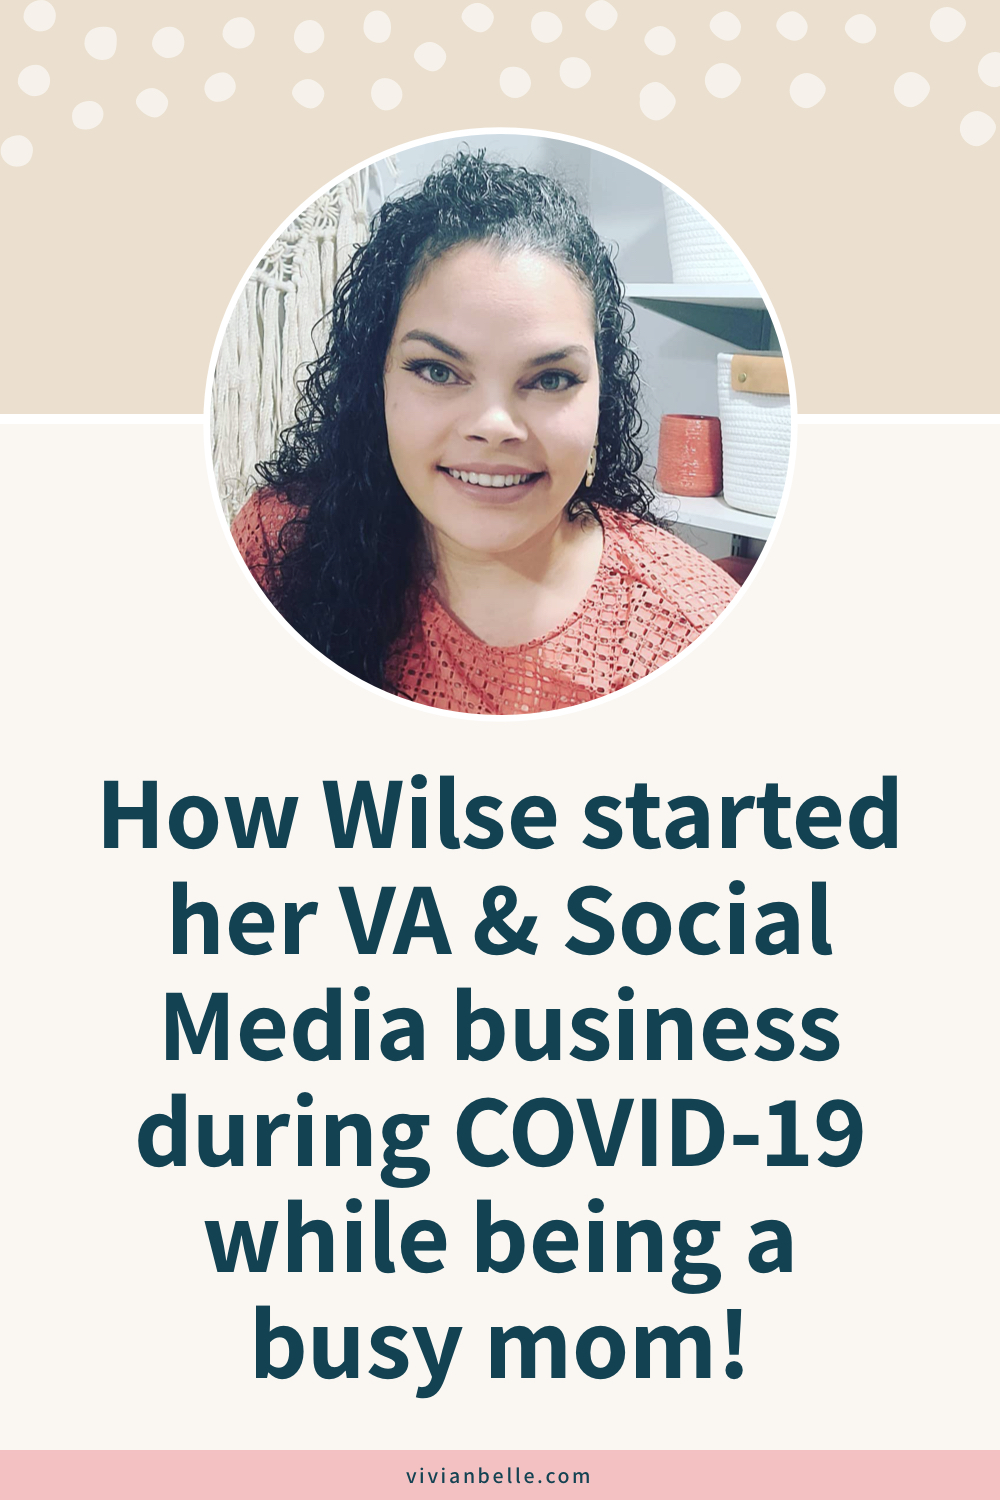 How Wilse started her Virtual Assistant & Social Media business during COVID-19 while being a busy mom!